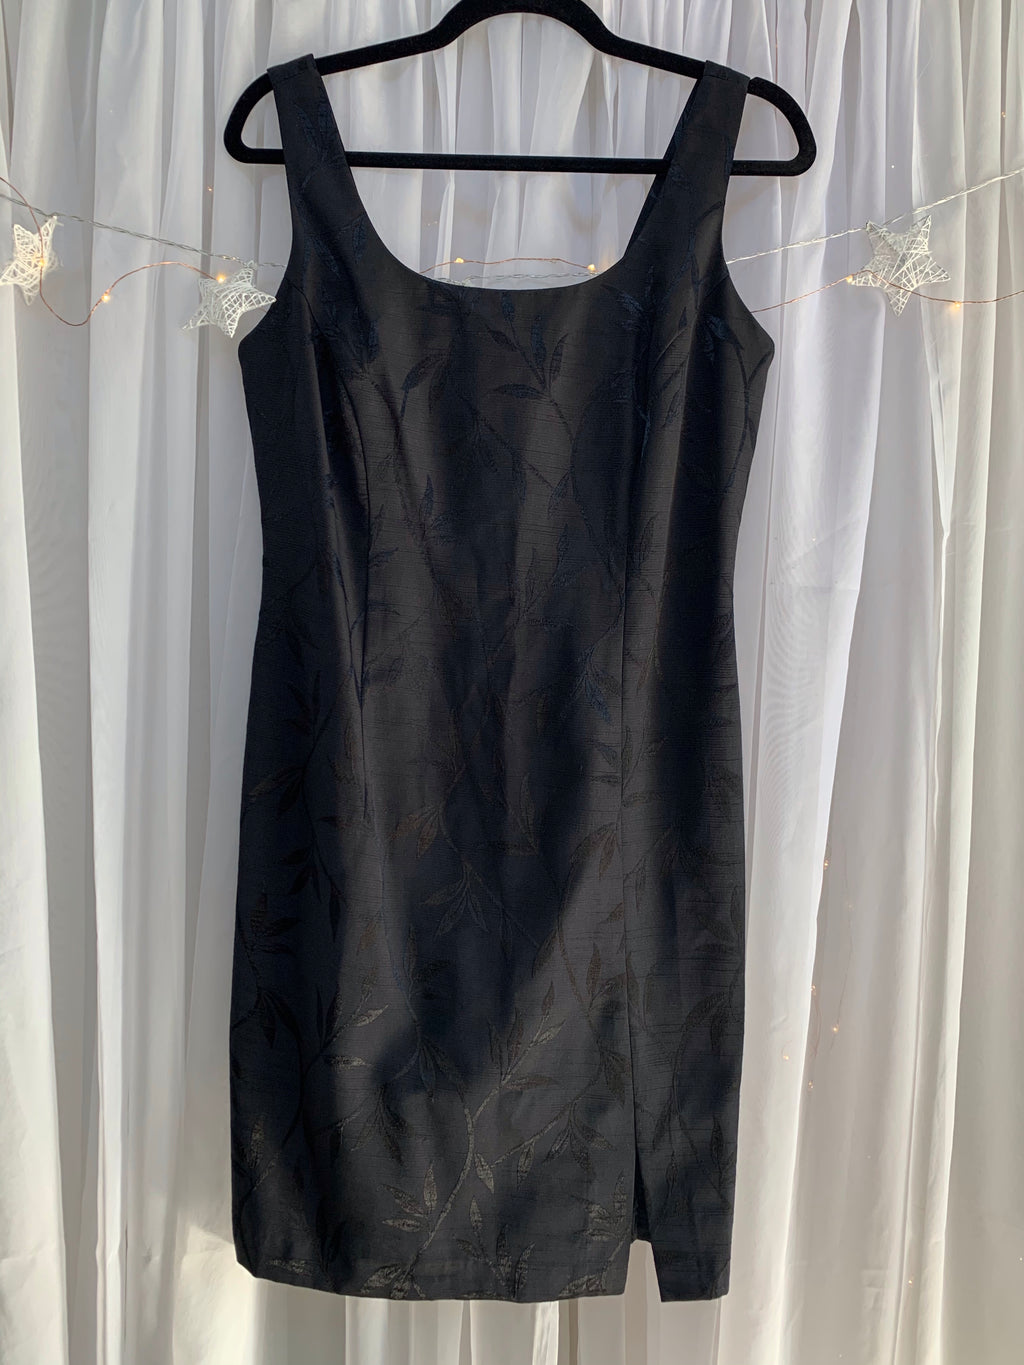 Vintage 1990's Little Black Dress Size 6